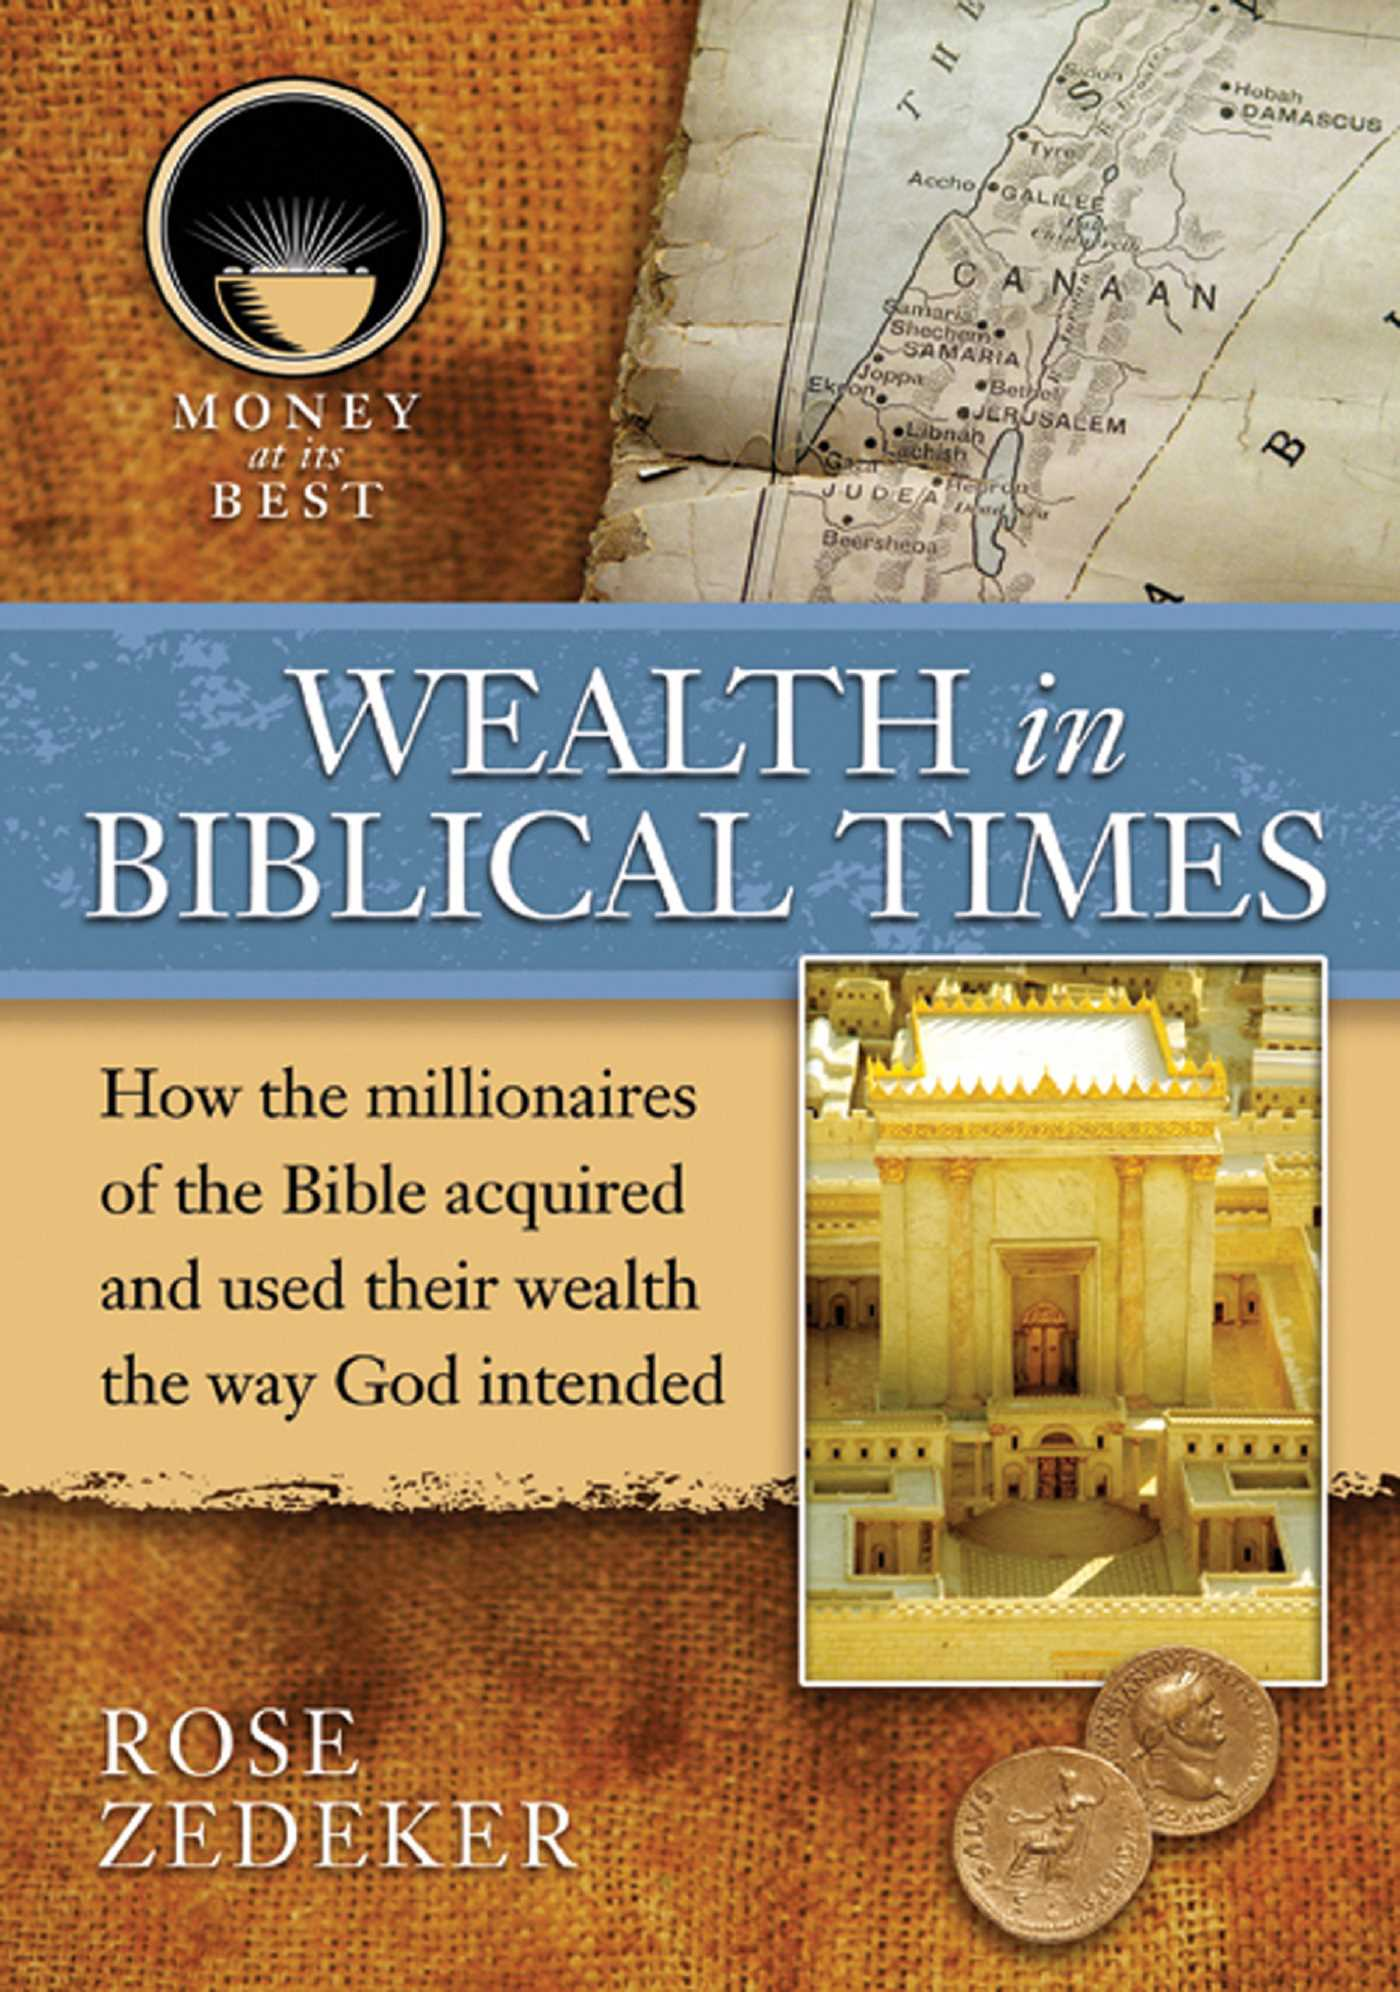 Wealth in Biblical Times by Rose Zediker